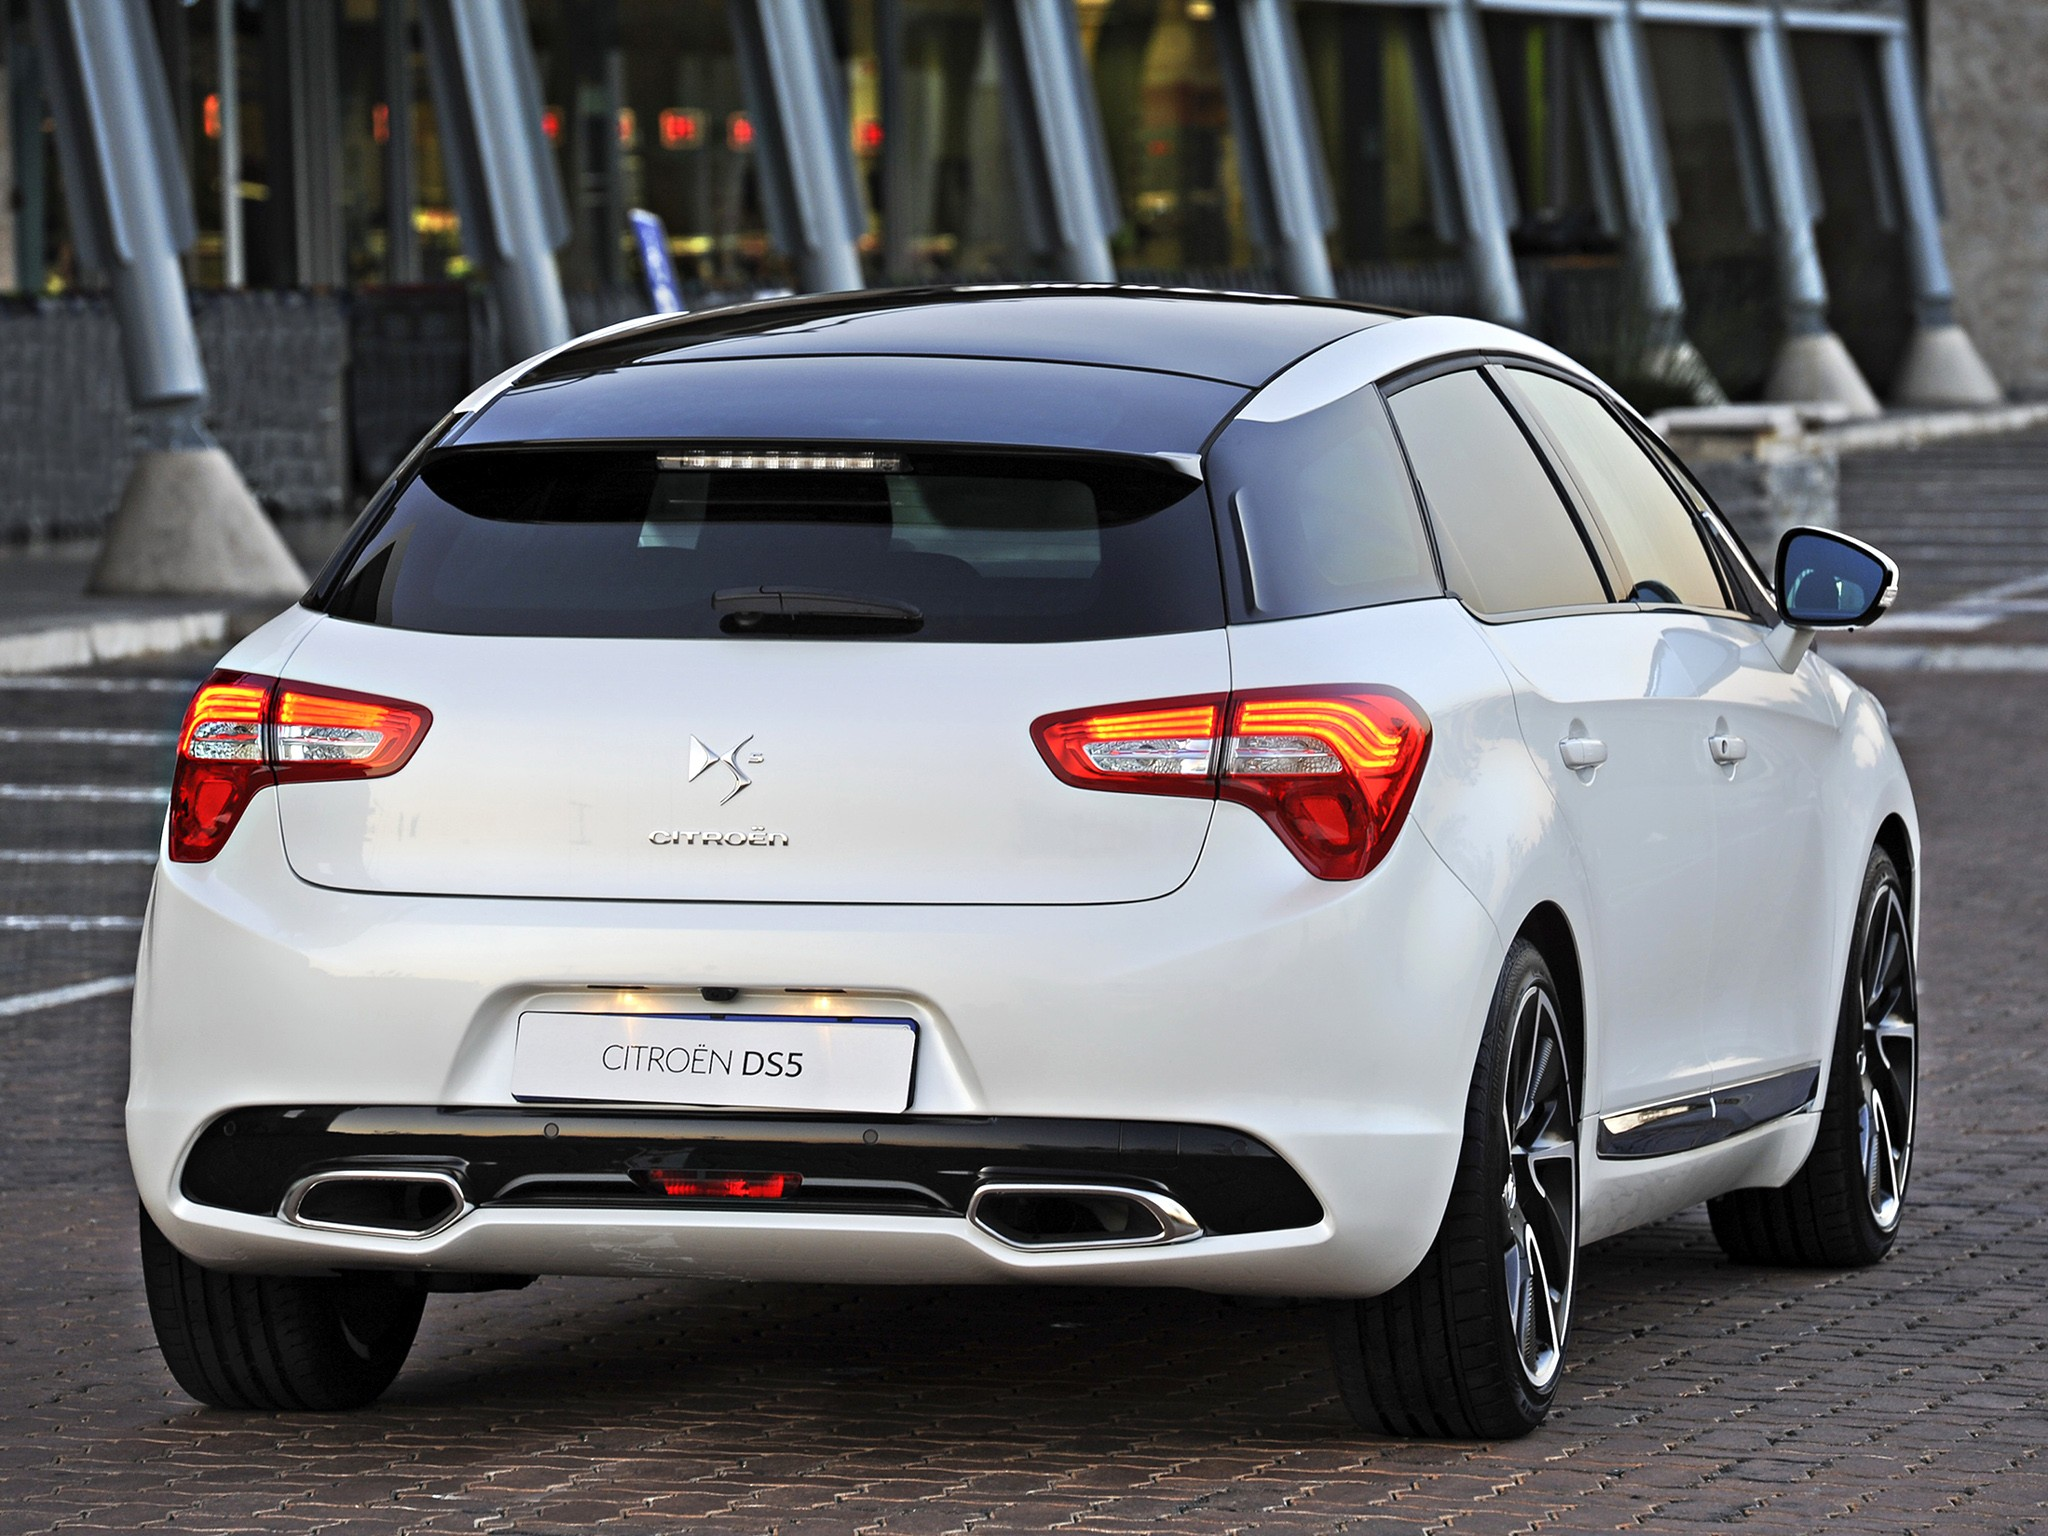 citroen ds5 specs amp photos 2011 2012 2013 2014 2015